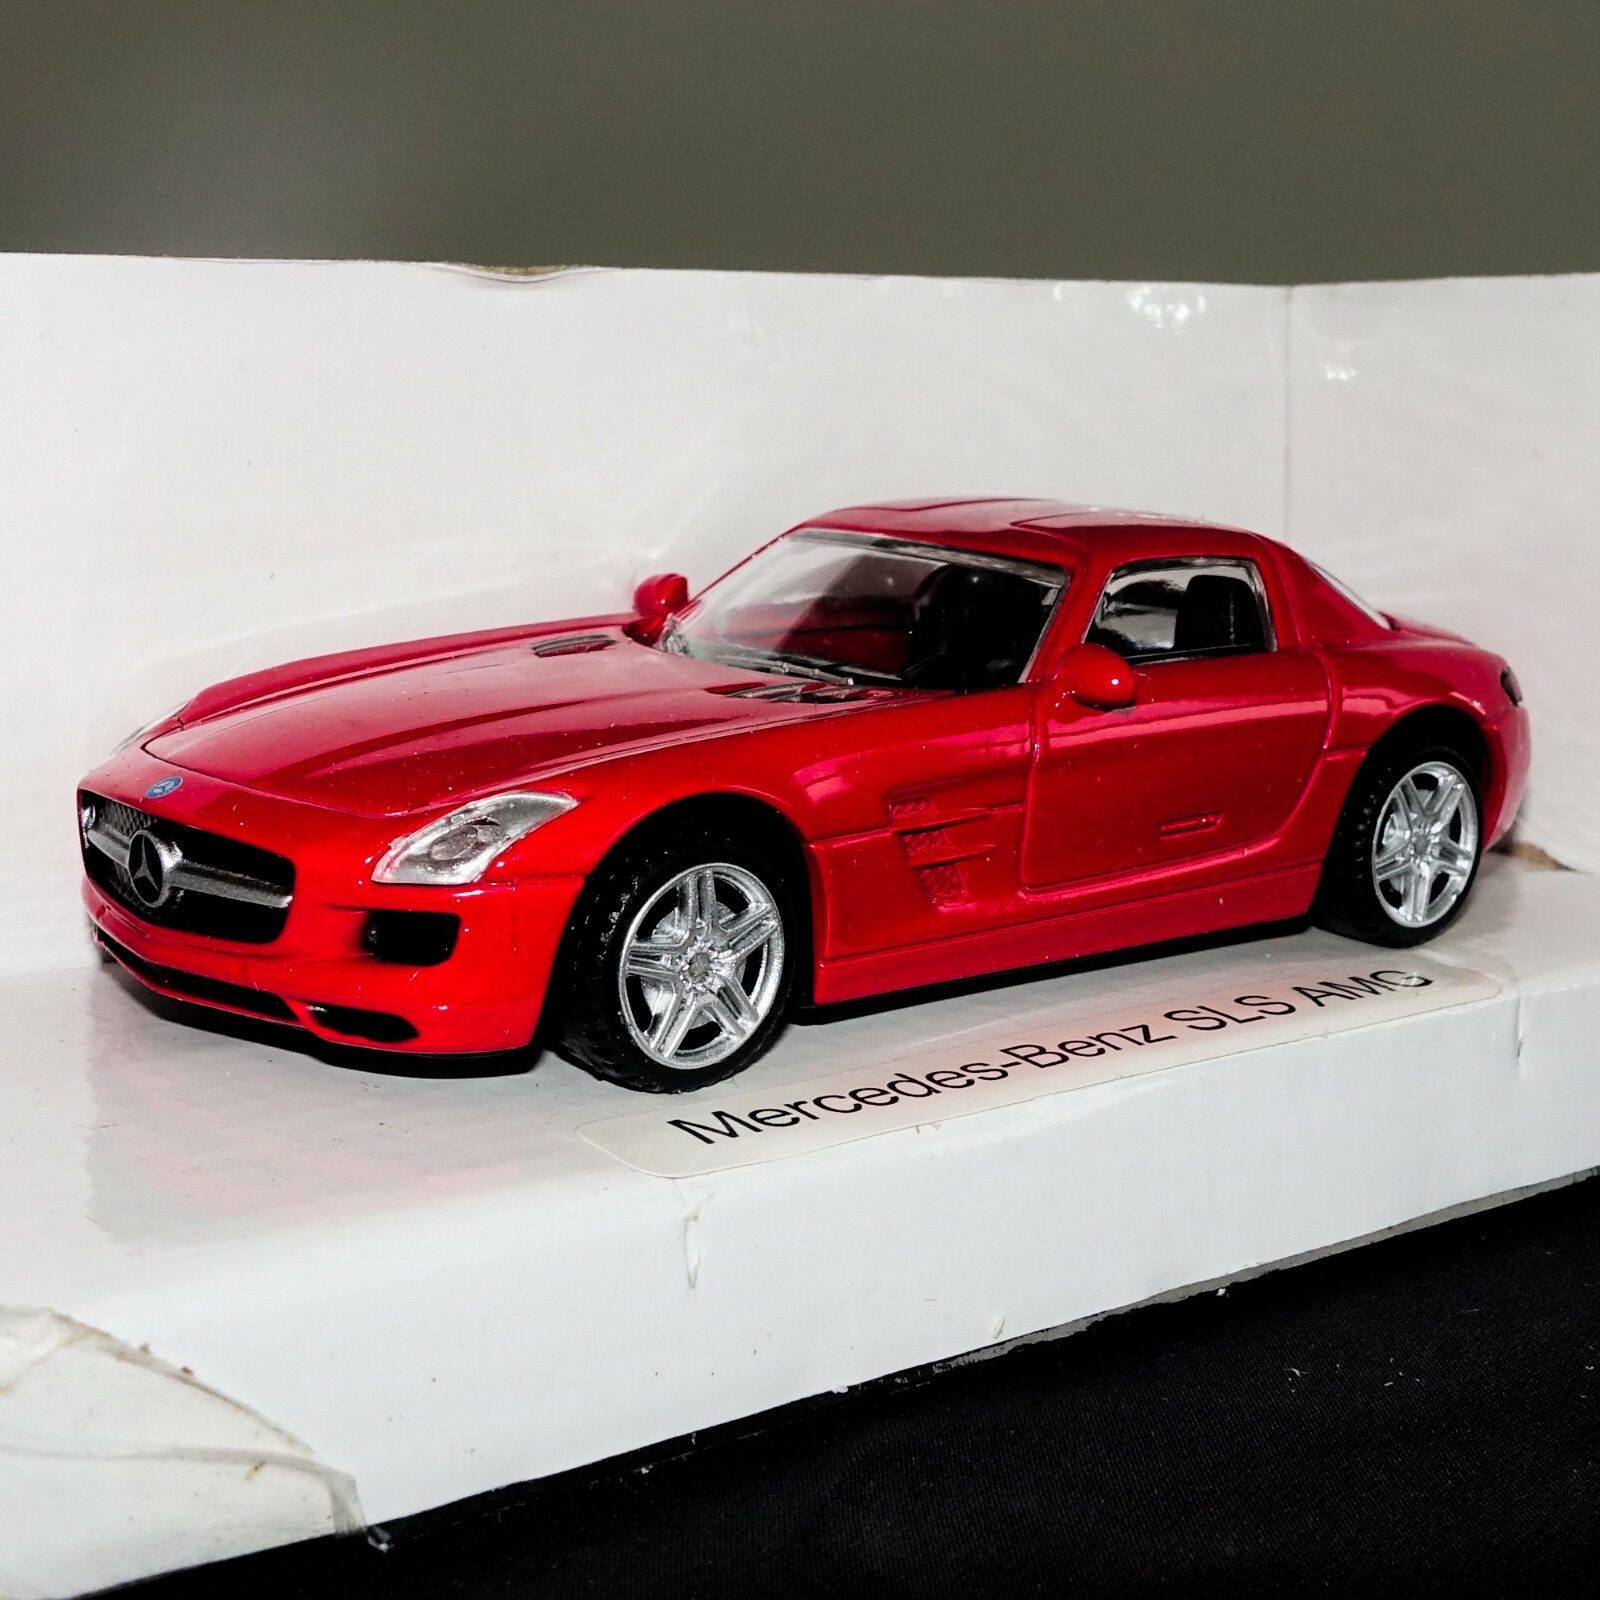 RED MERCEDES BENZ SLS AMG SPORT COUPE CAR MODEL SCALE 1:43